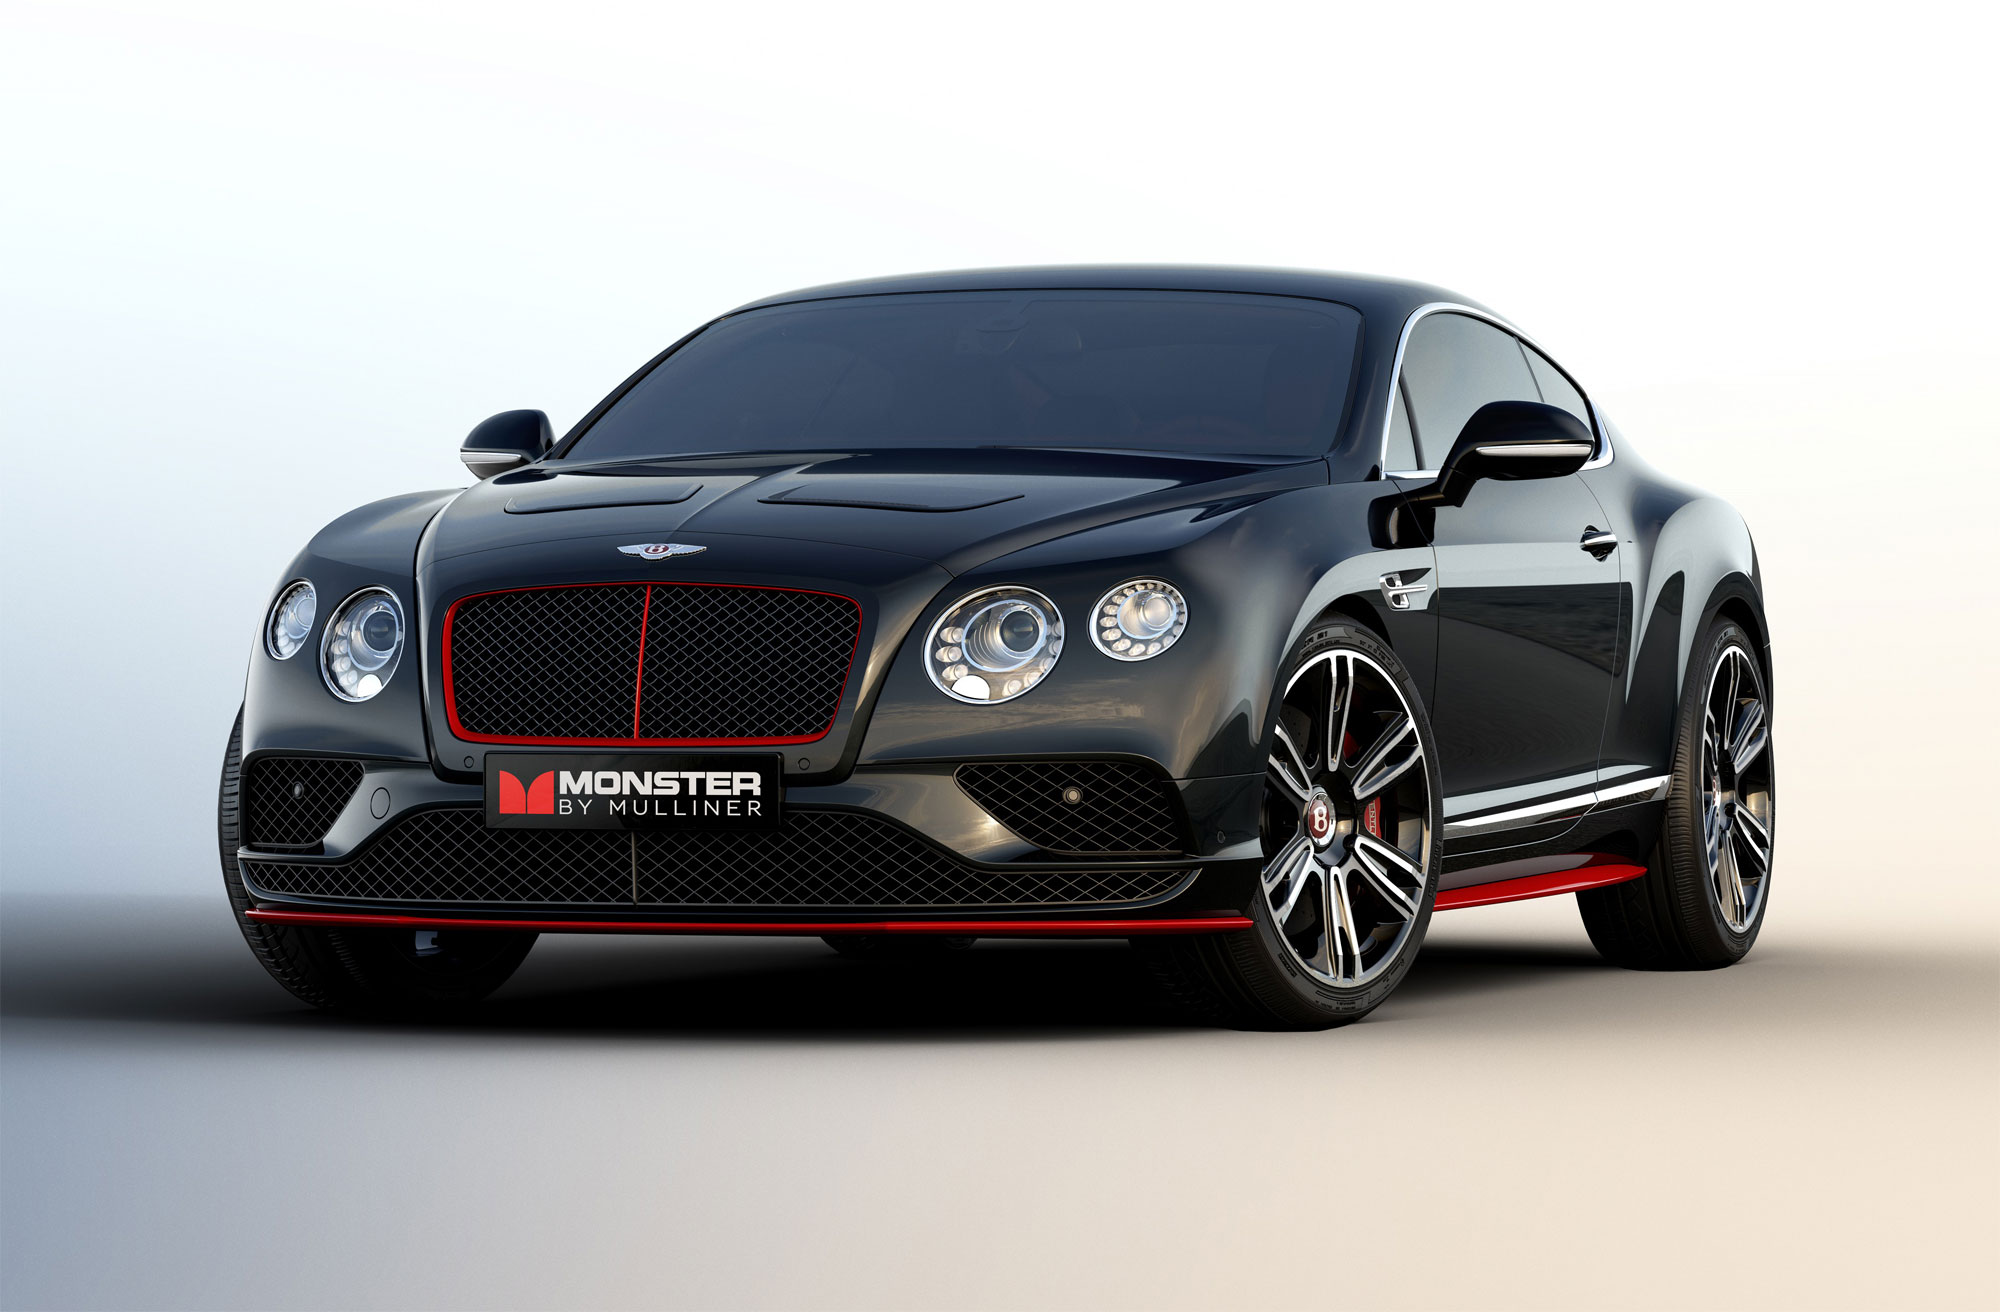 Monster by Mulliner - Handcrafted by Bentley's Mulliner Division and inspired by Monster